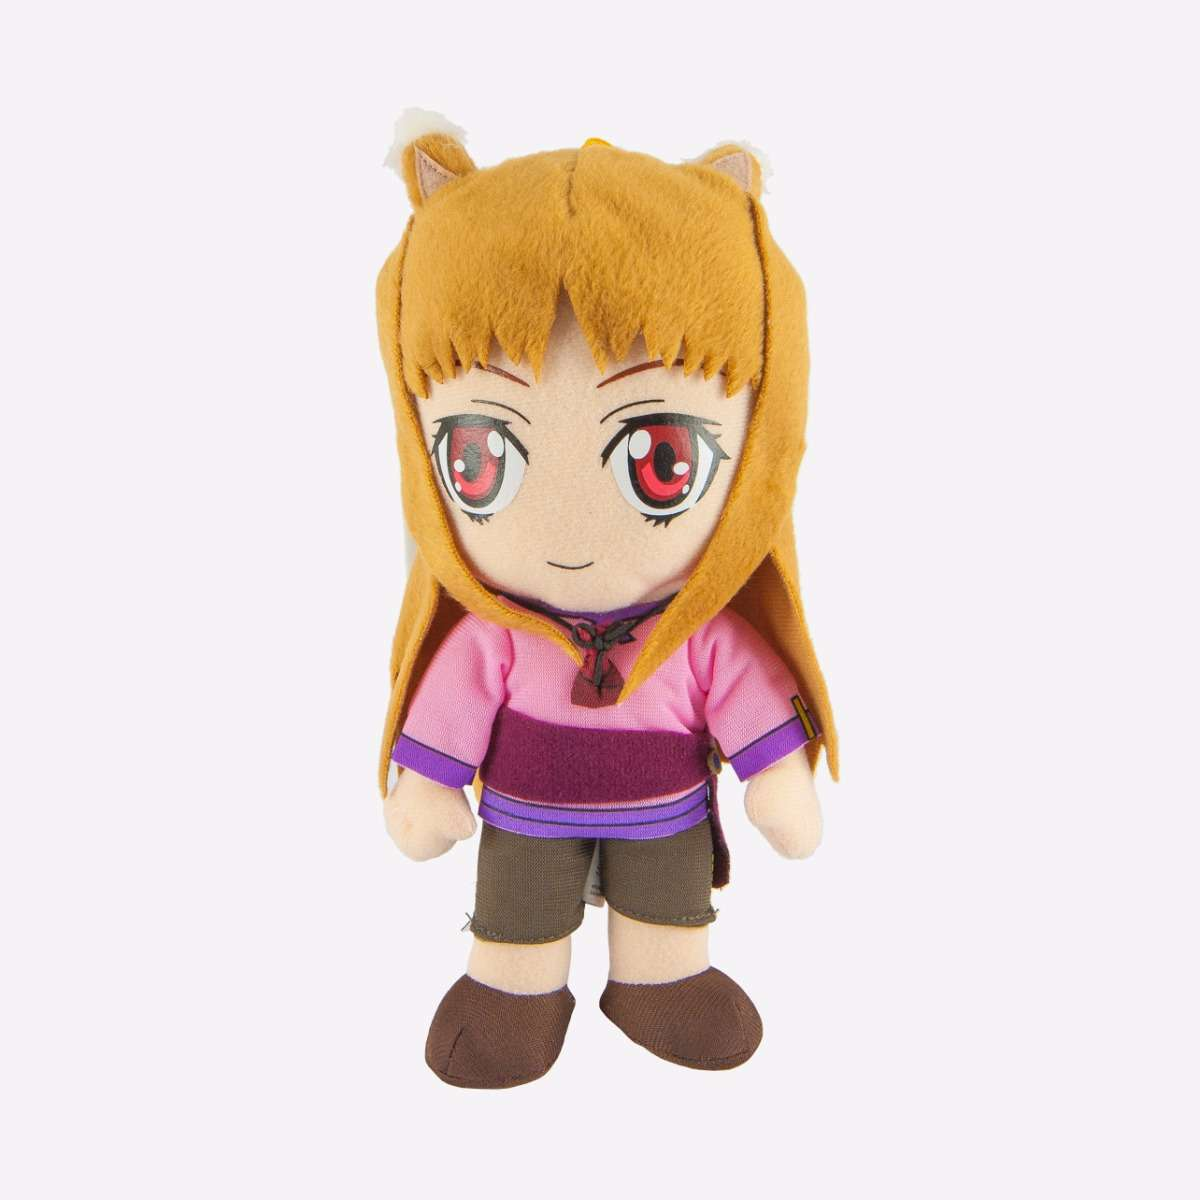 Holo Plush toys-games